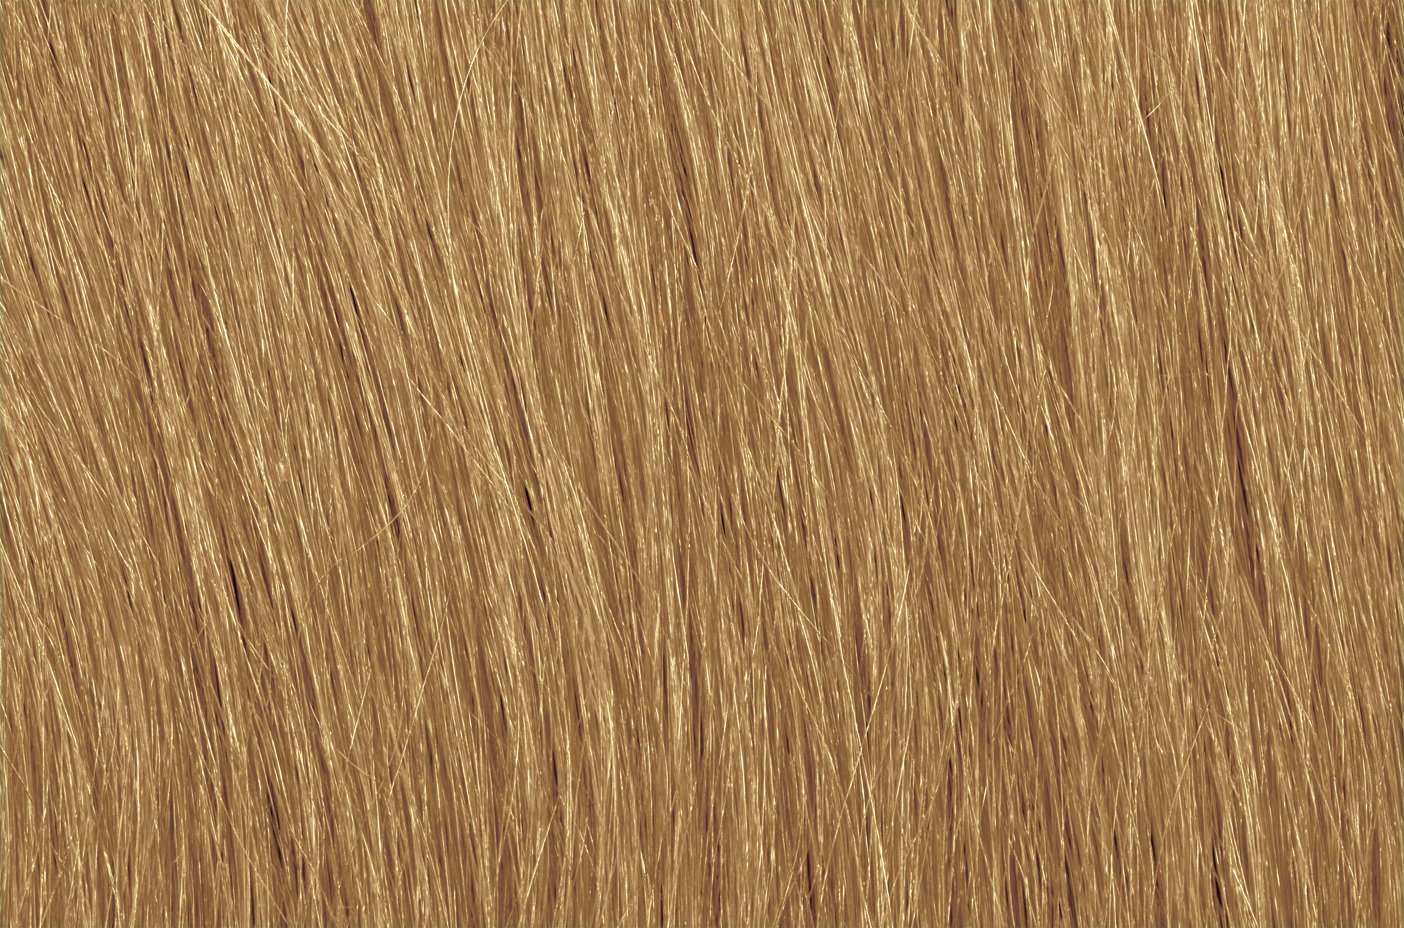 HairMarker by ColorMark (Medium Blonde) by HairMarker (Image #3)